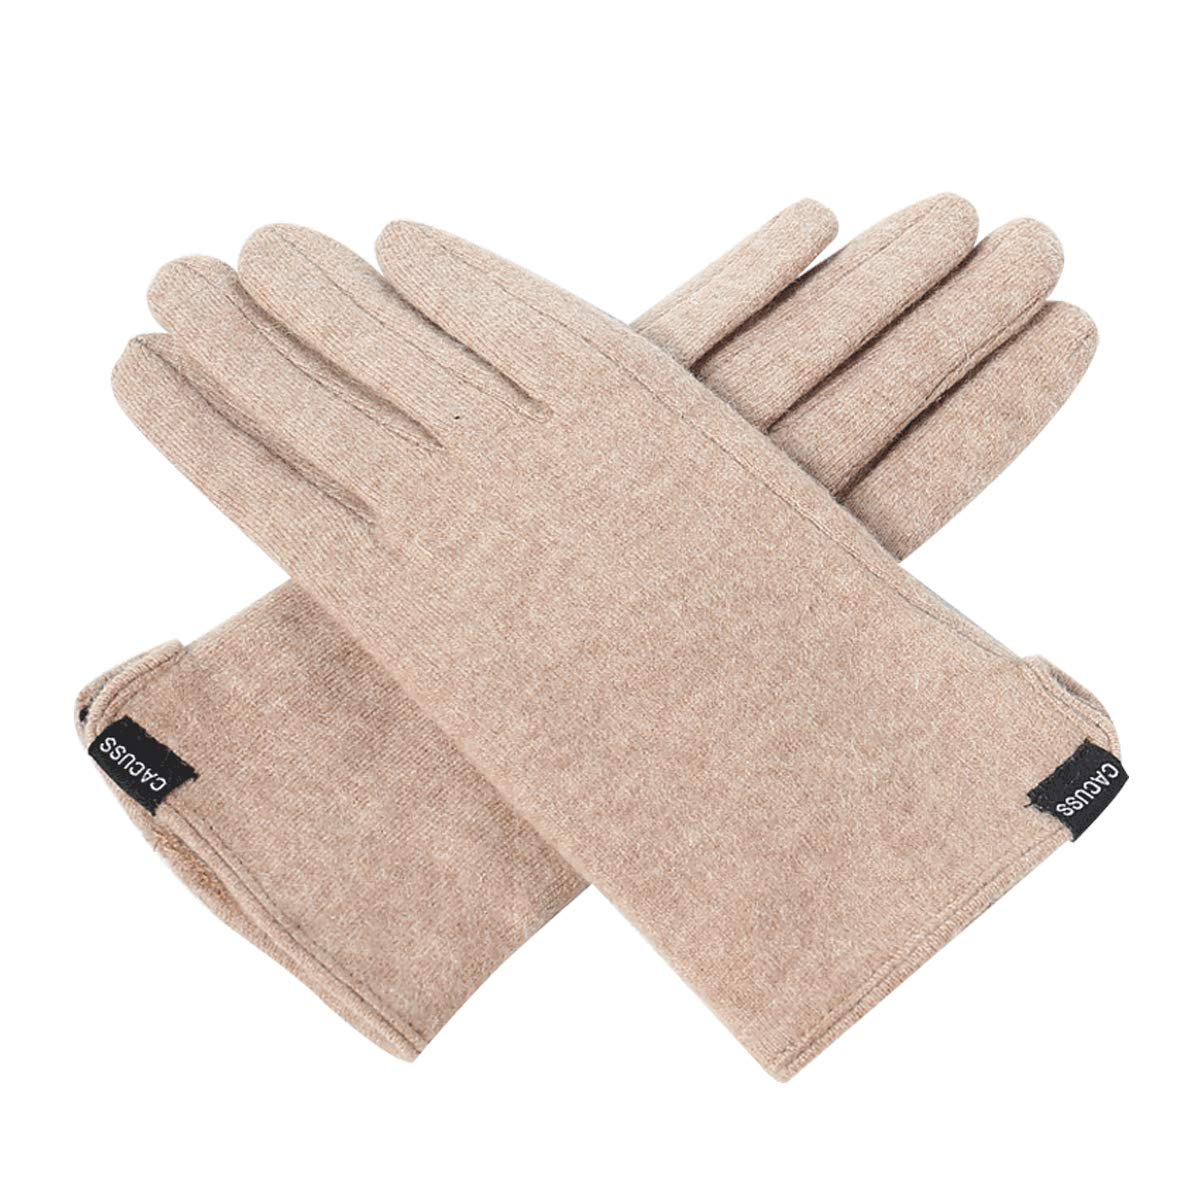 CACUSS Gloves Women Autumn and Winter Knit Gloves for Women Warm Touch Screen Gloves Wear-resistant Cycling Travel Windproof Finger Gloves Ladies (Light tan) by CACUSS (Image #1)